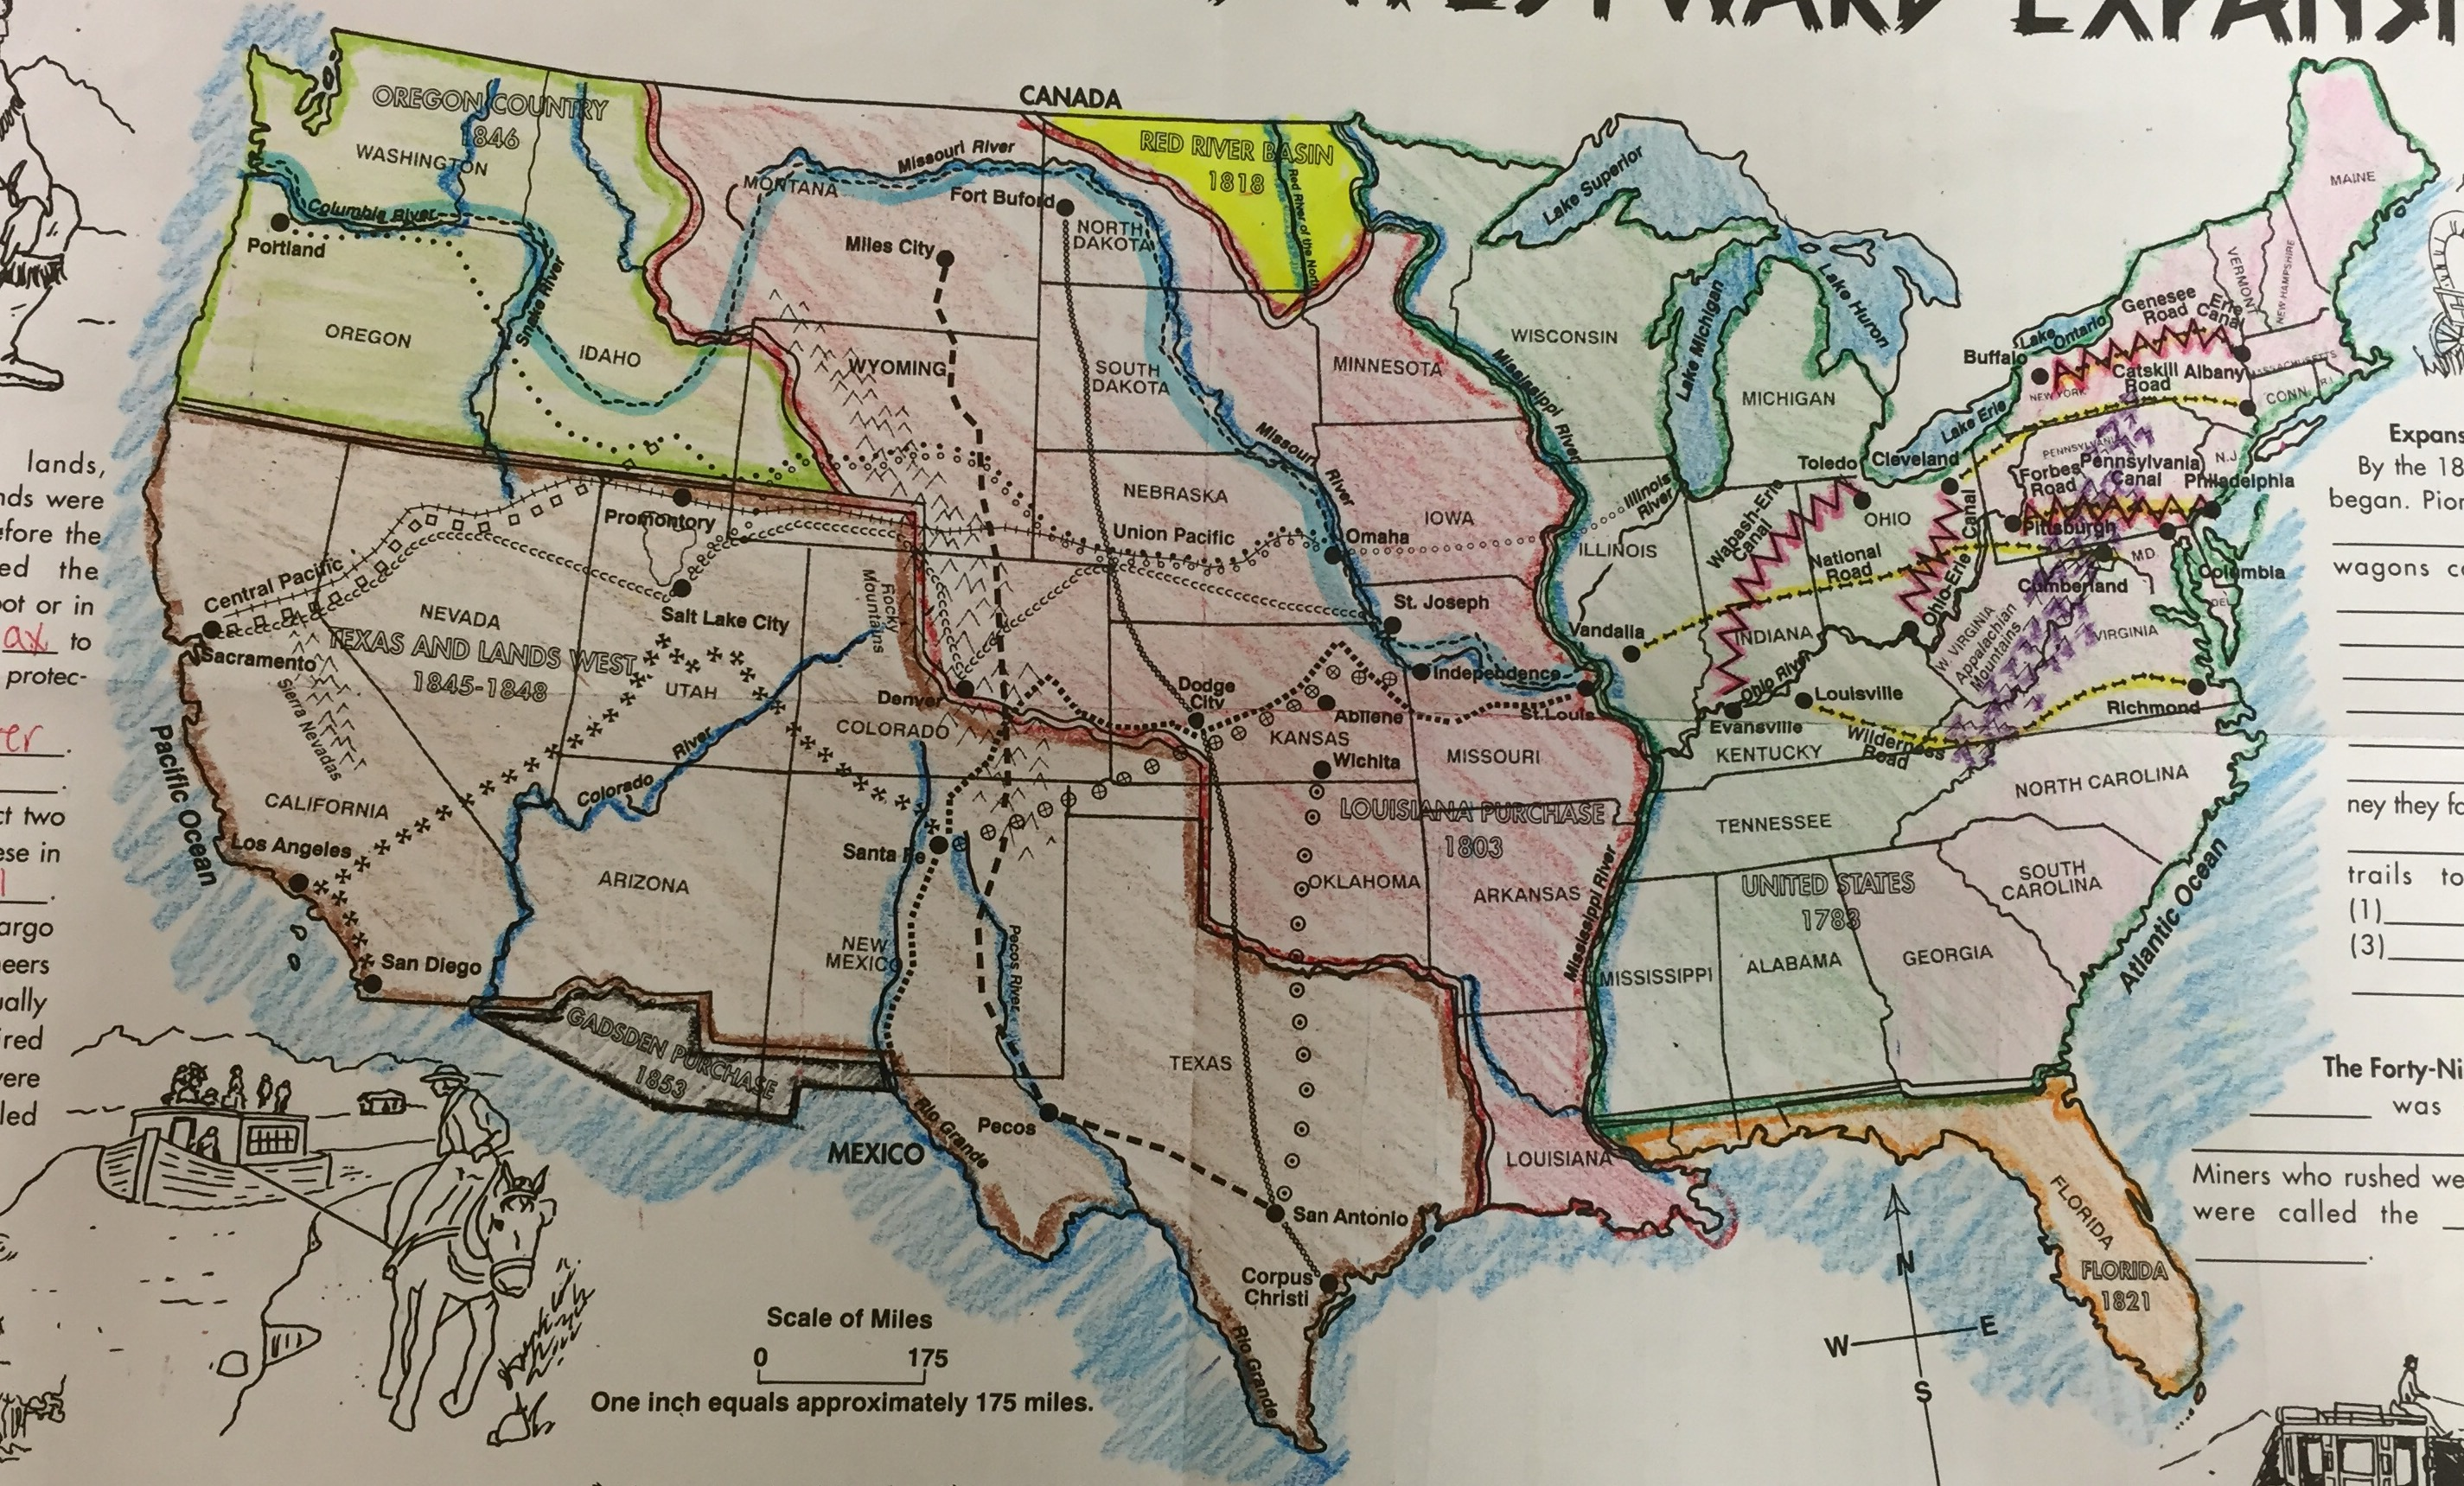 Westward Expansion Map on timeline of us expansion, map of united states westward expansion after, mapping us expansion, map japan expansion, us outline map expansion, map showing the expansion of the united states,